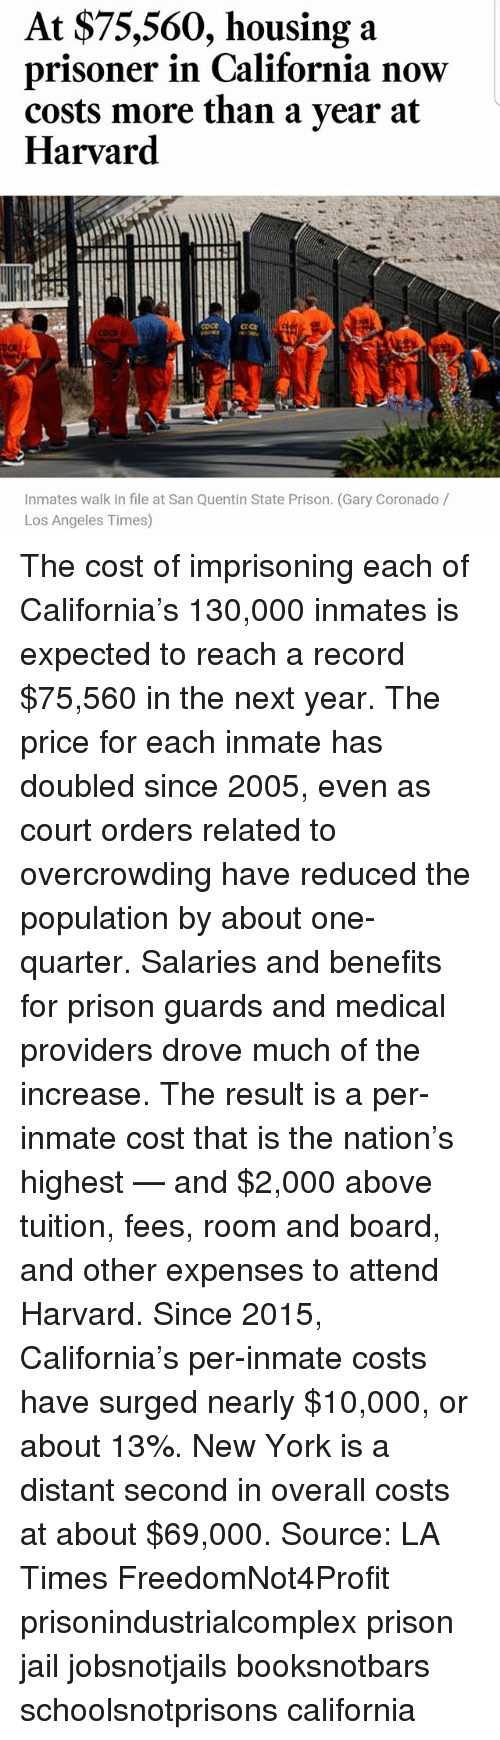 Jail, Memes, and New York: At $75,560, housing a  prisoner in California now  costs more than a year at  Harvard  CICA  Inmates walk in file at San Quentin State Prison. (Gary Coronado  Los Angeles Times) The cost of imprisoning each of California's 130,000 inmates is expected to reach a record $75,560 in the next year. The price for each inmate has doubled since 2005, even as court orders related to overcrowding have reduced the population by about one-quarter. Salaries and benefits for prison guards and medical providers drove much of the increase. The result is a per-inmate cost that is the nation's highest — and $2,000 above tuition, fees, room and board, and other expenses to attend Harvard. Since 2015, California's per-inmate costs have surged nearly $10,000, or about 13%. New York is a distant second in overall costs at about $69,000. Source: LA Times FreedomNot4Profit prisonindustrialcomplex prison jail jobsnotjails booksnotbars schoolsnotprisons california